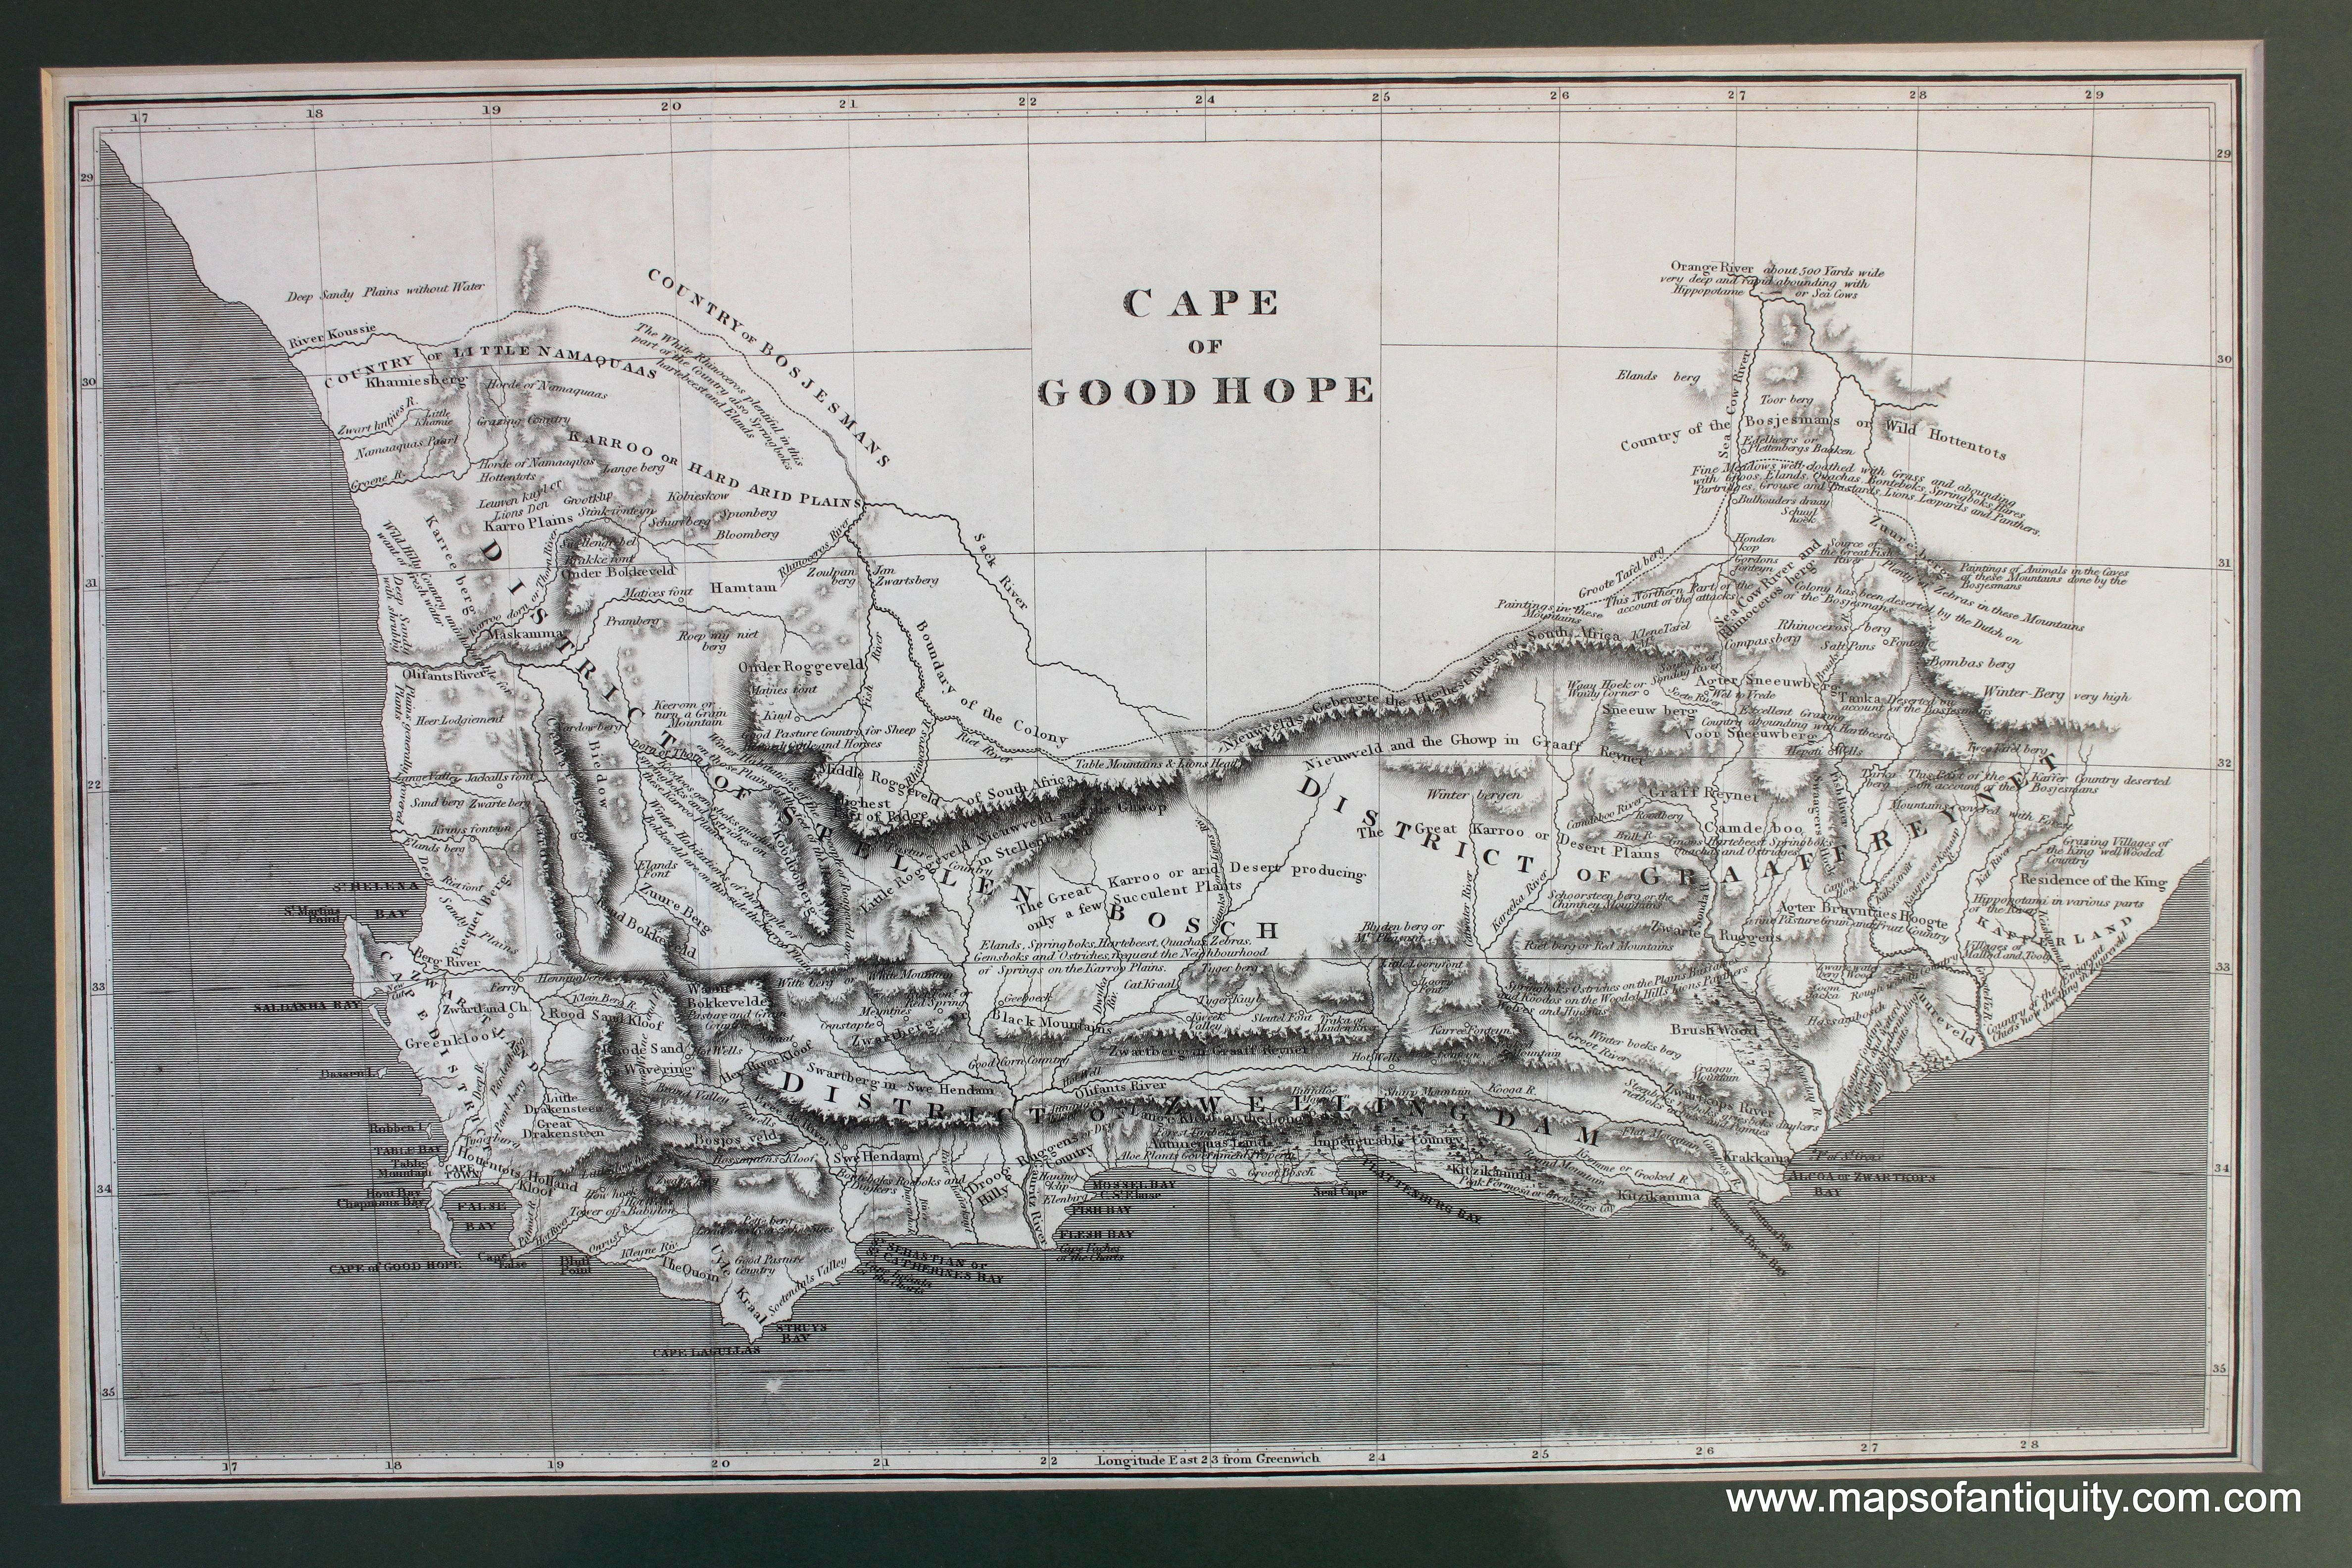 Antique Map South Africa Cape Colony 1806 | Antique Maps and